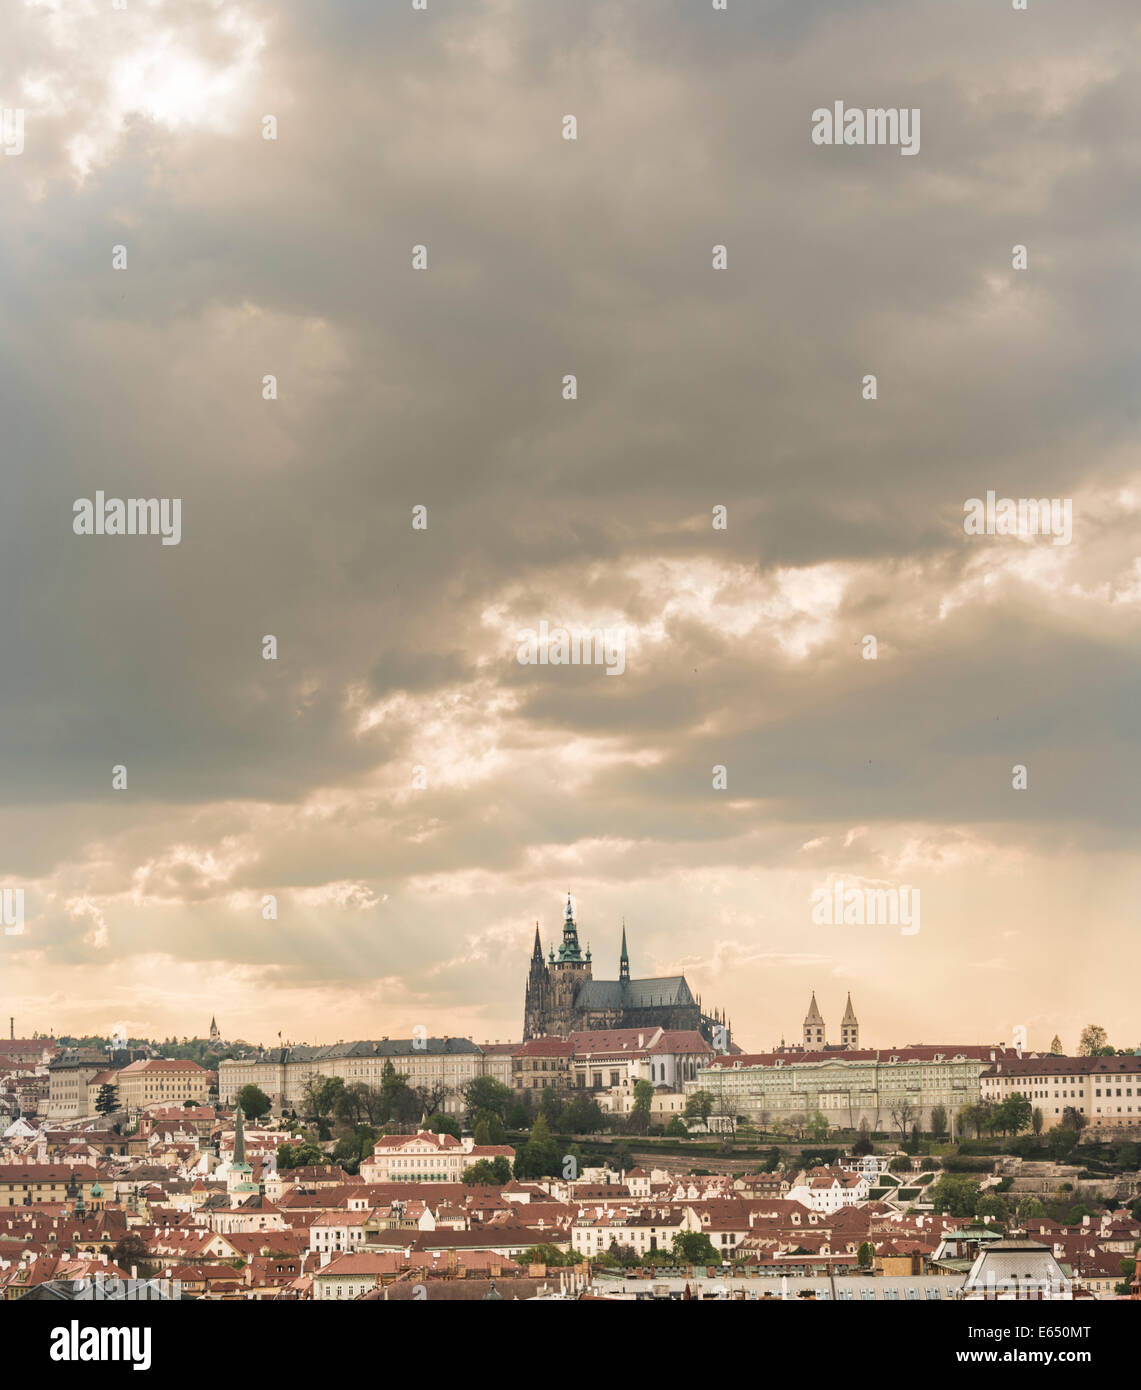 Prague Castle, St. Vitus Cathedral, Old Town Square, Old Town quarter, Prague, Czech Republic Stock Photo